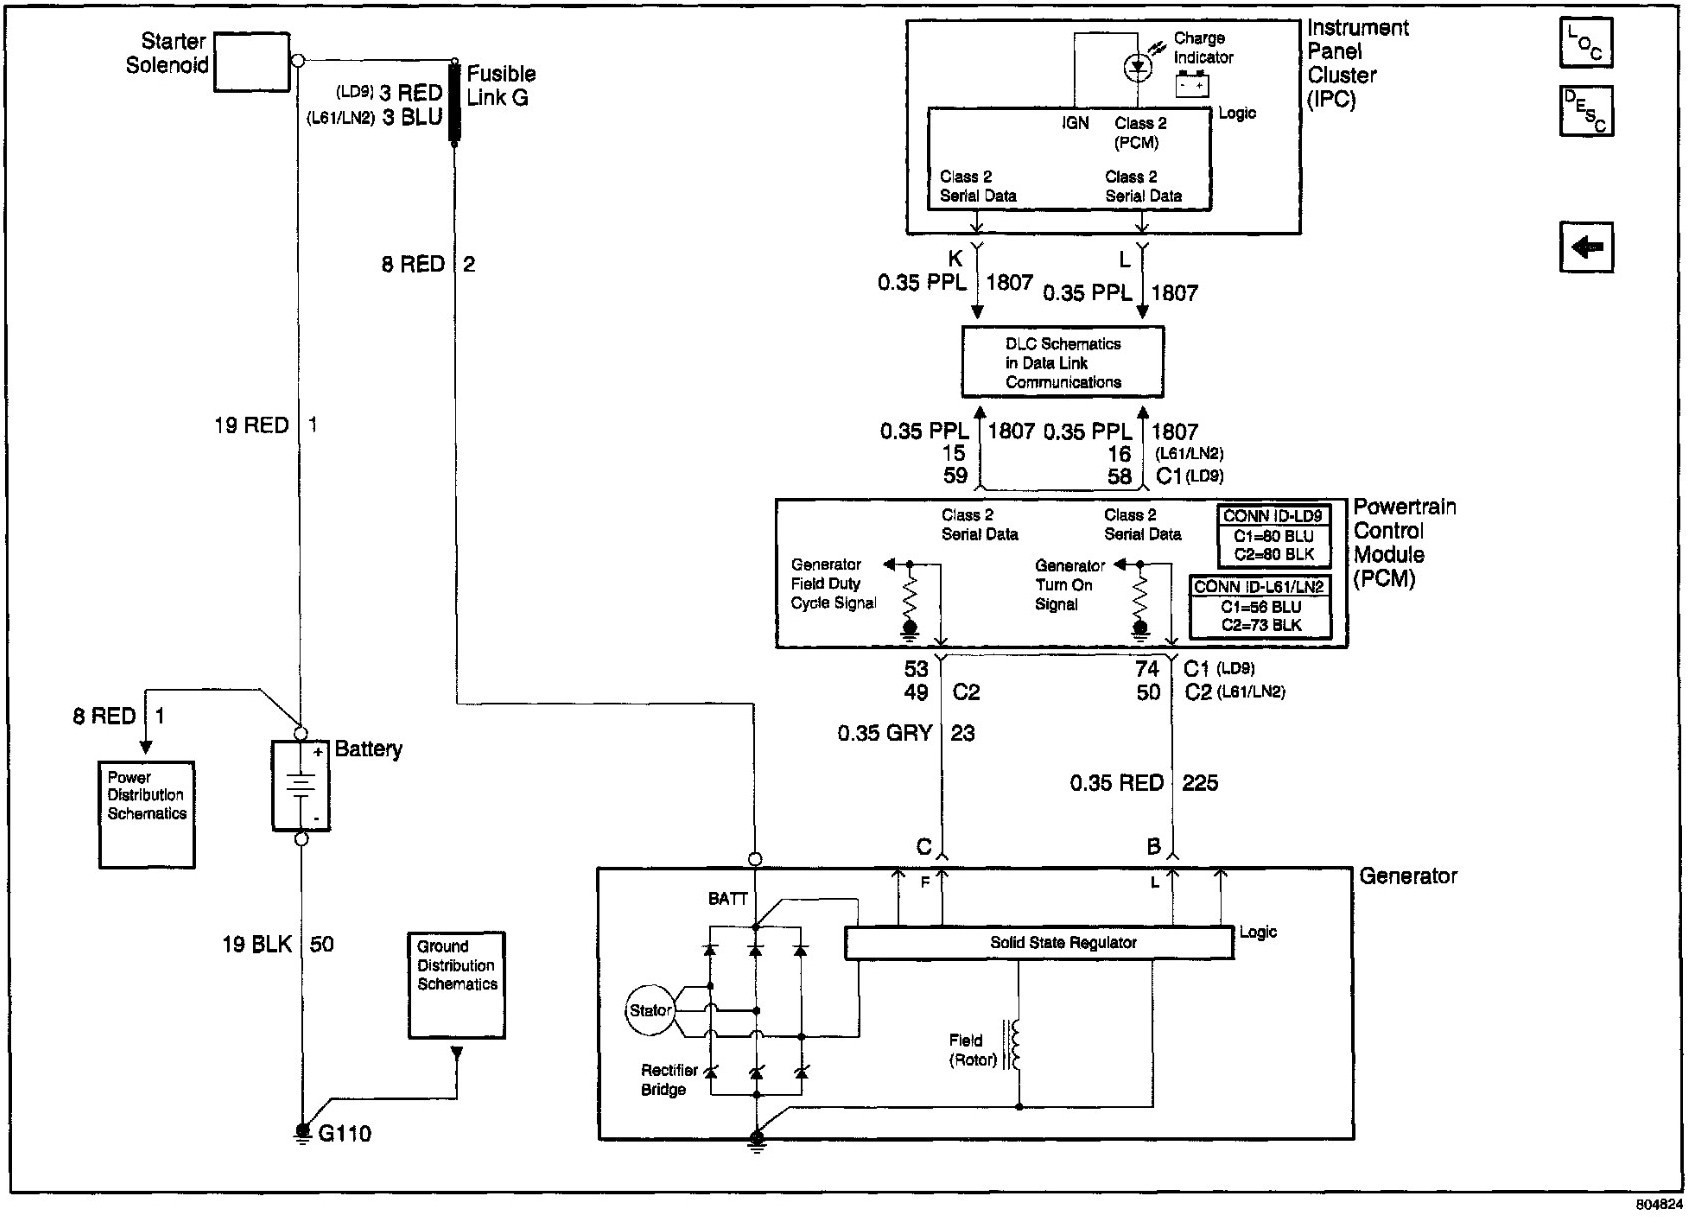 raven-mpv-7100-wiring-diagram-26 Raven Wiring Diagram on ford alternator, air compressor, ignition switch, 4 pin relay, limit switch, camper trailer, dump trailer, simple motorcycle, wire trailer, driving light, dc motor, fog light, boat battery, basic electrical,